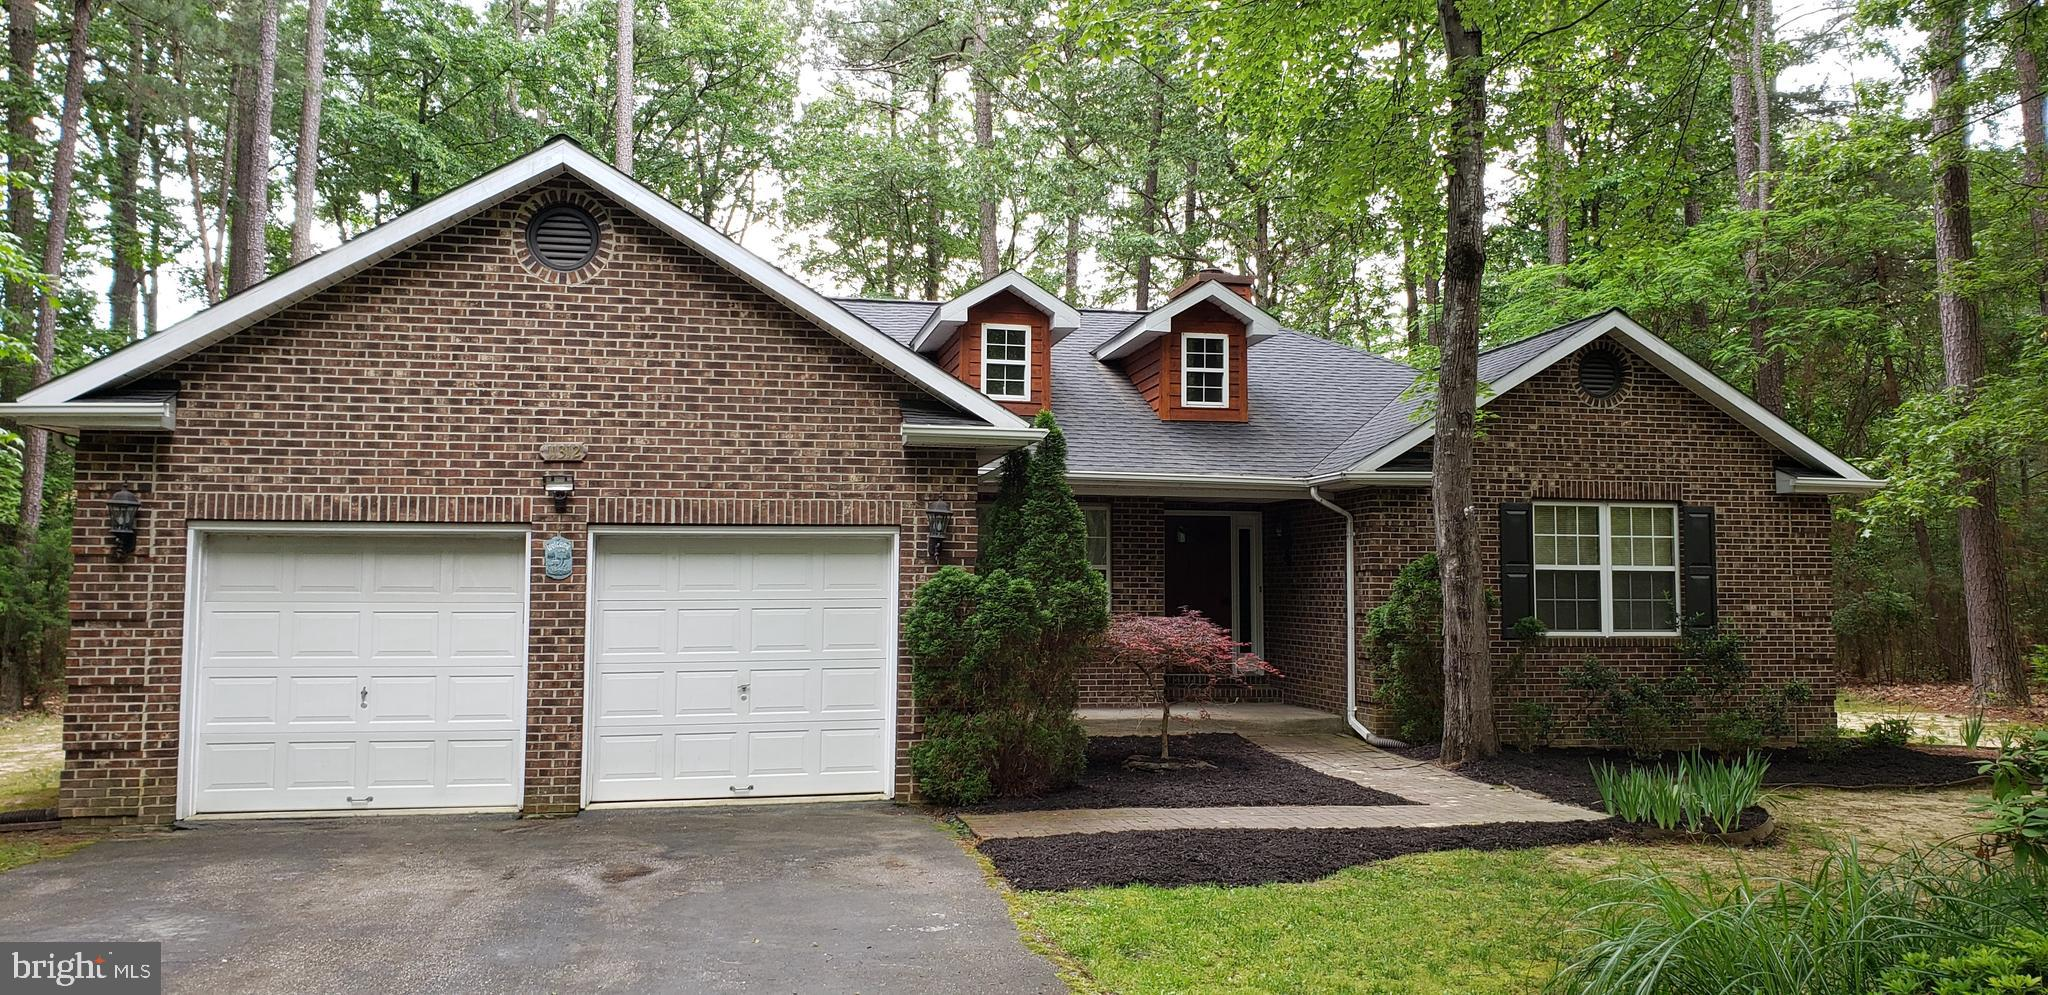 CHECK OUT THIS ROOMY RANCH! Five-bedroom updated Ranch/Rambler. Nestled in a pretty wooded setting,